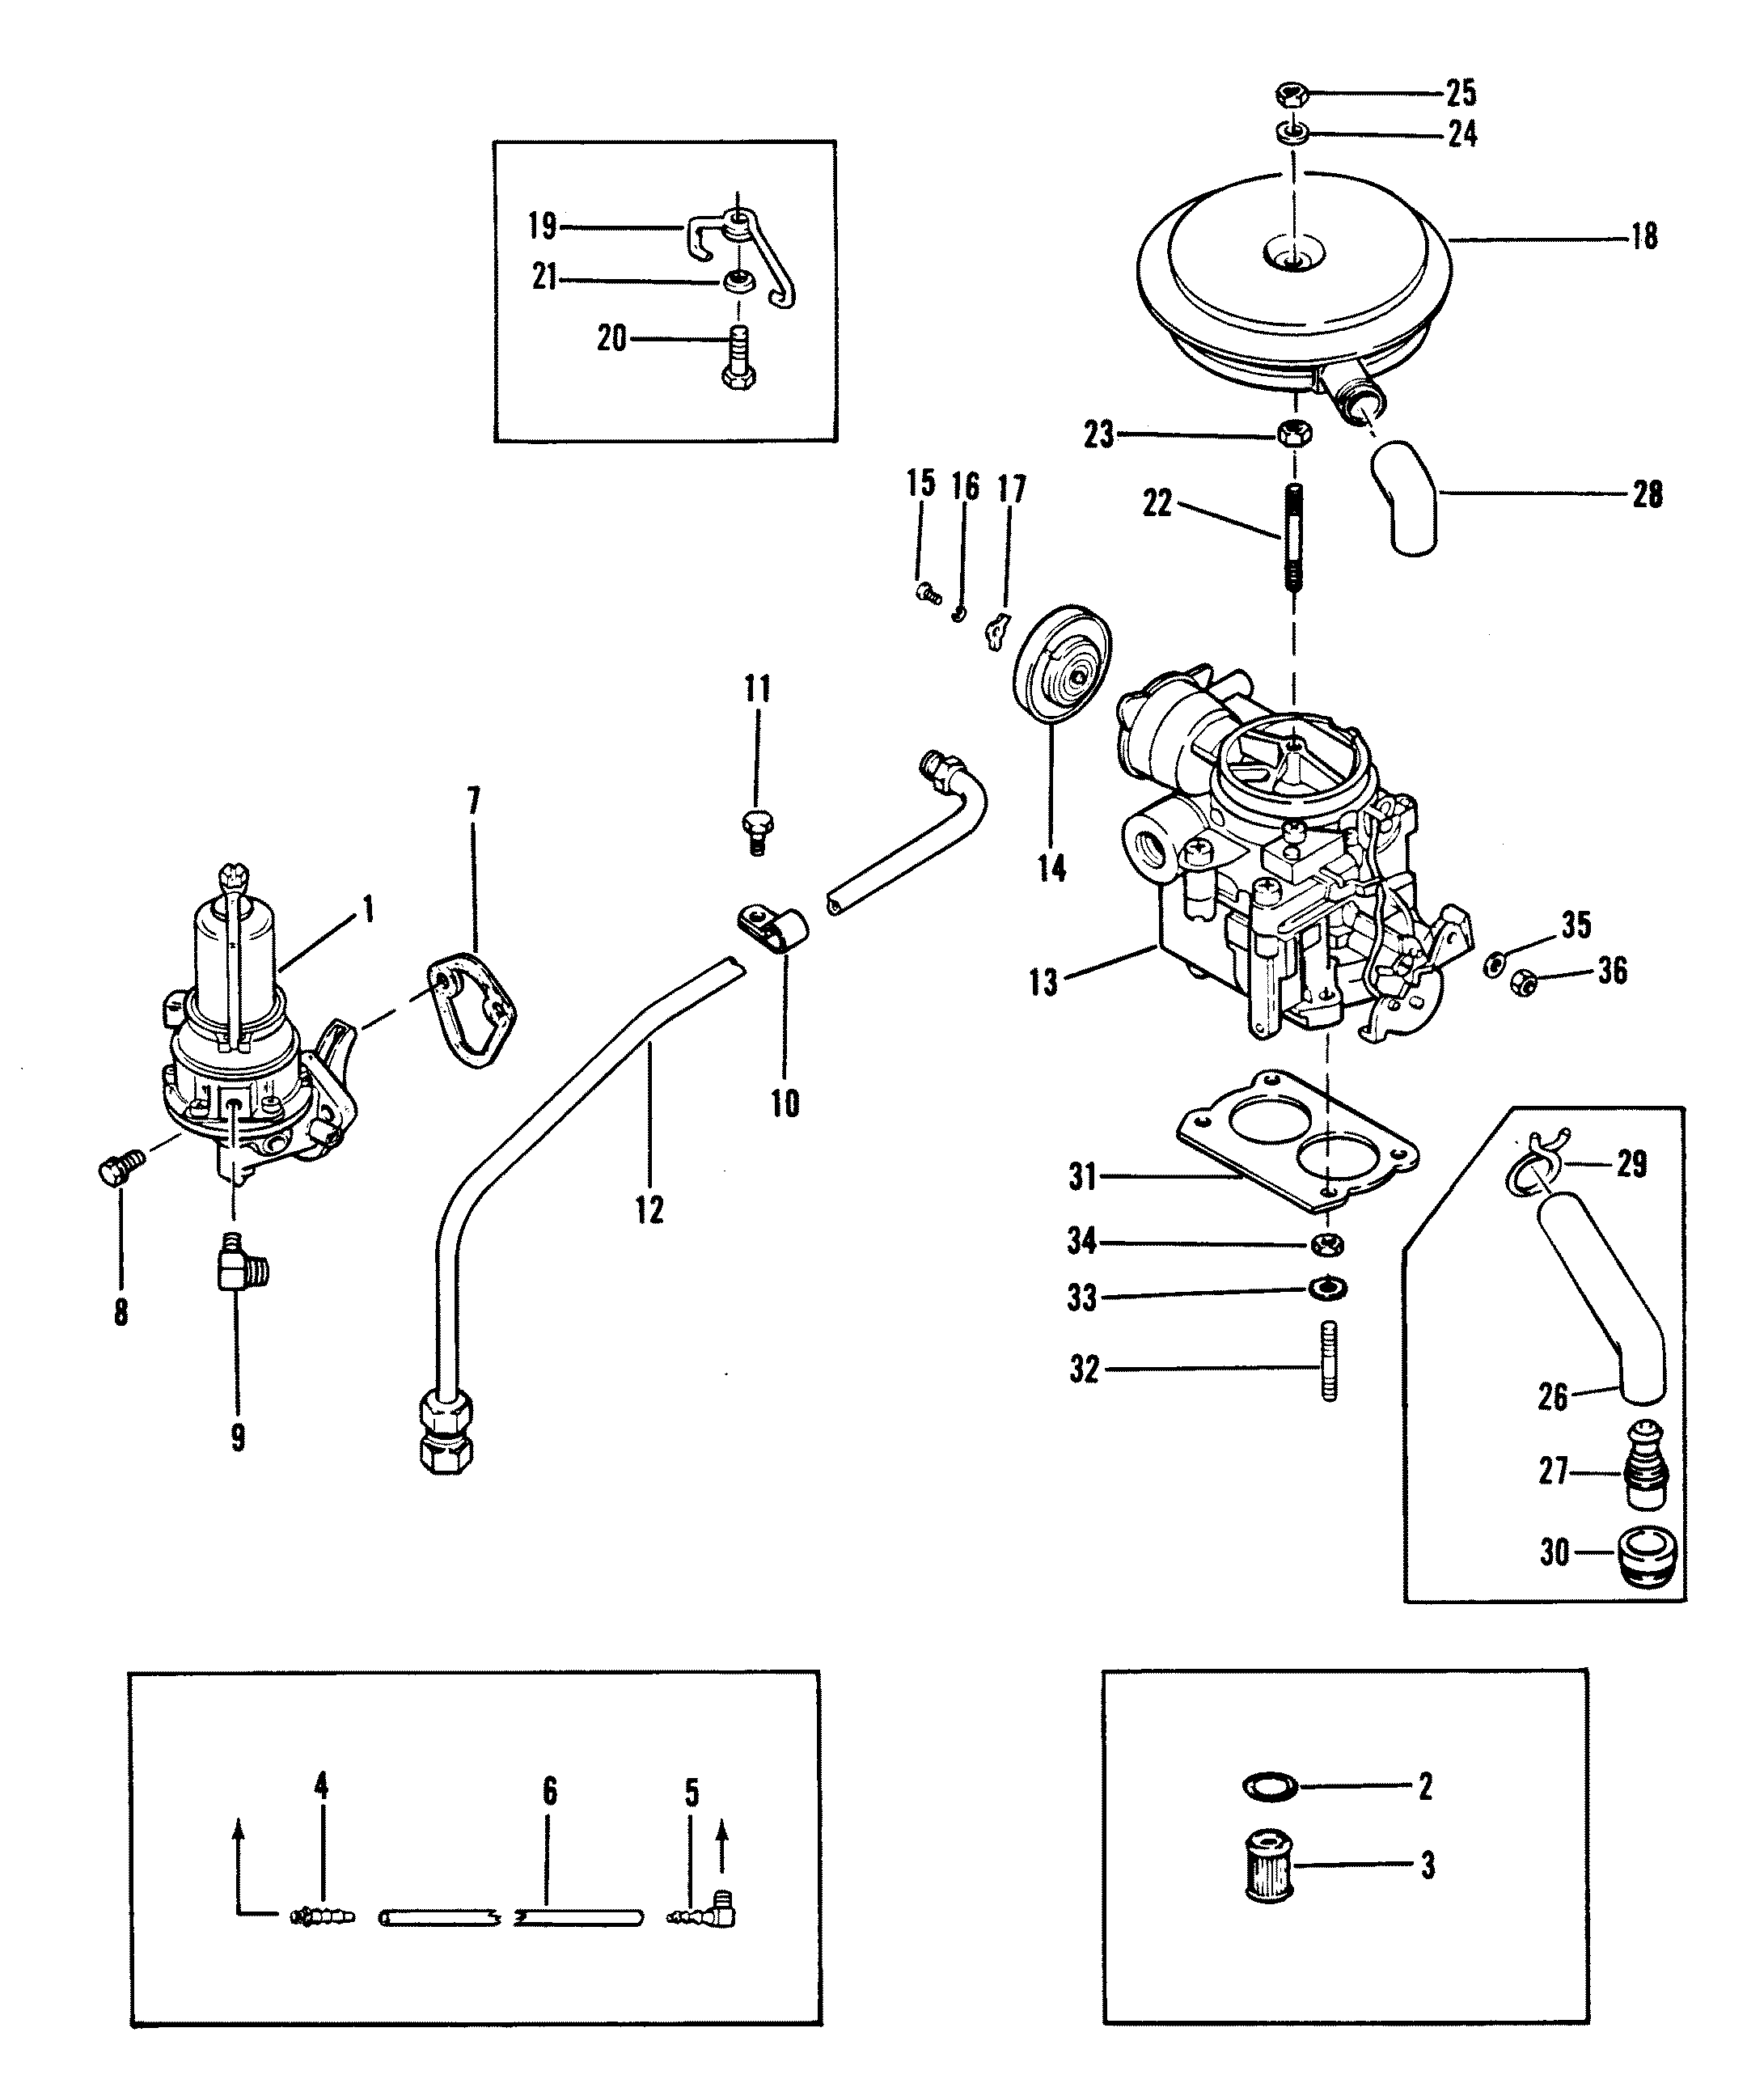 3 0l Gm Engine Parts 3 Free Engine Image For User Manual